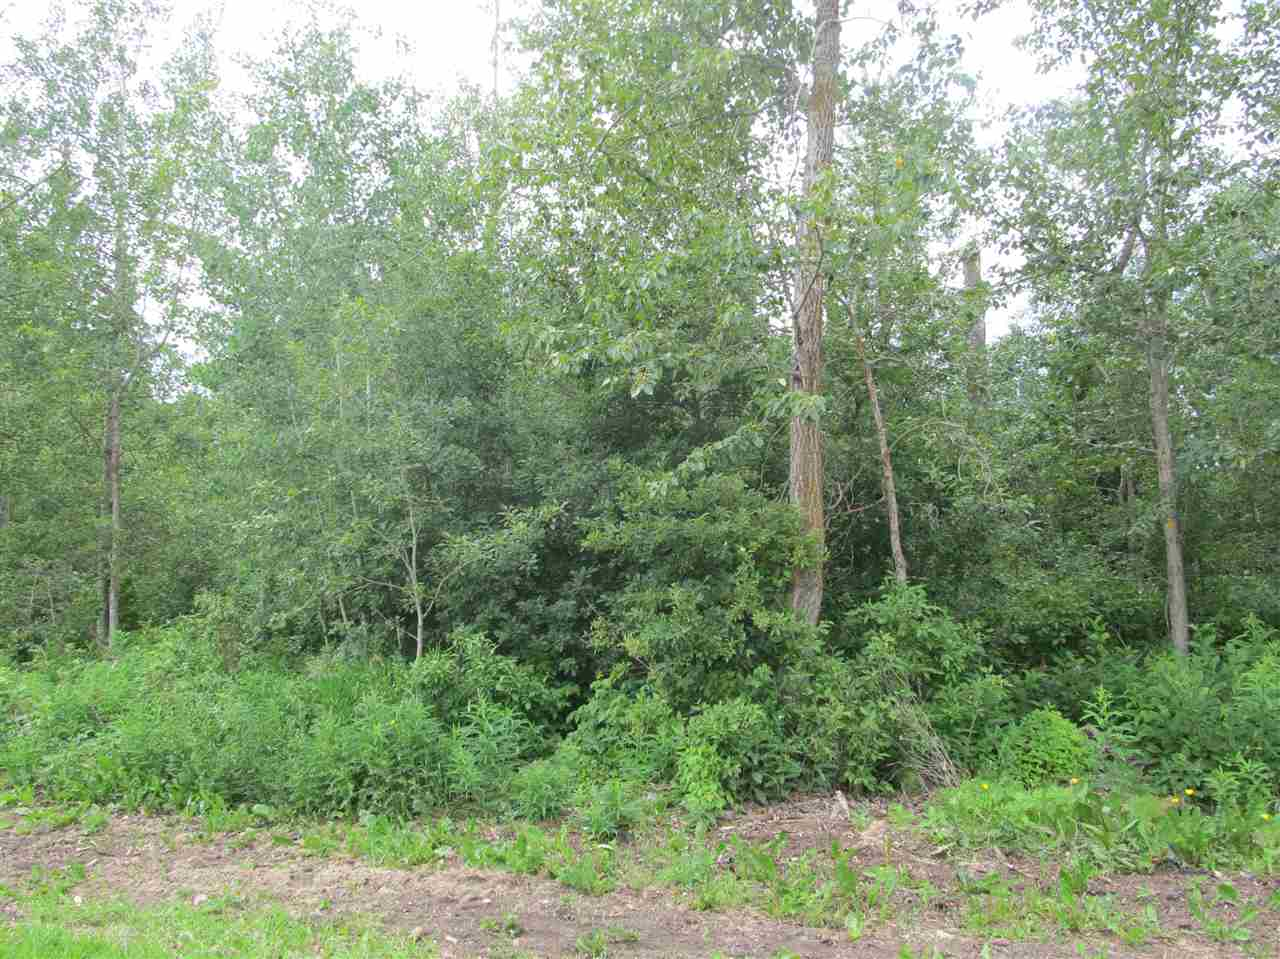 Photo 4: 453 Lakeview Drive: Rural Lac Ste. Anne County Rural Land/Vacant Lot for sale : MLS® # E4046326